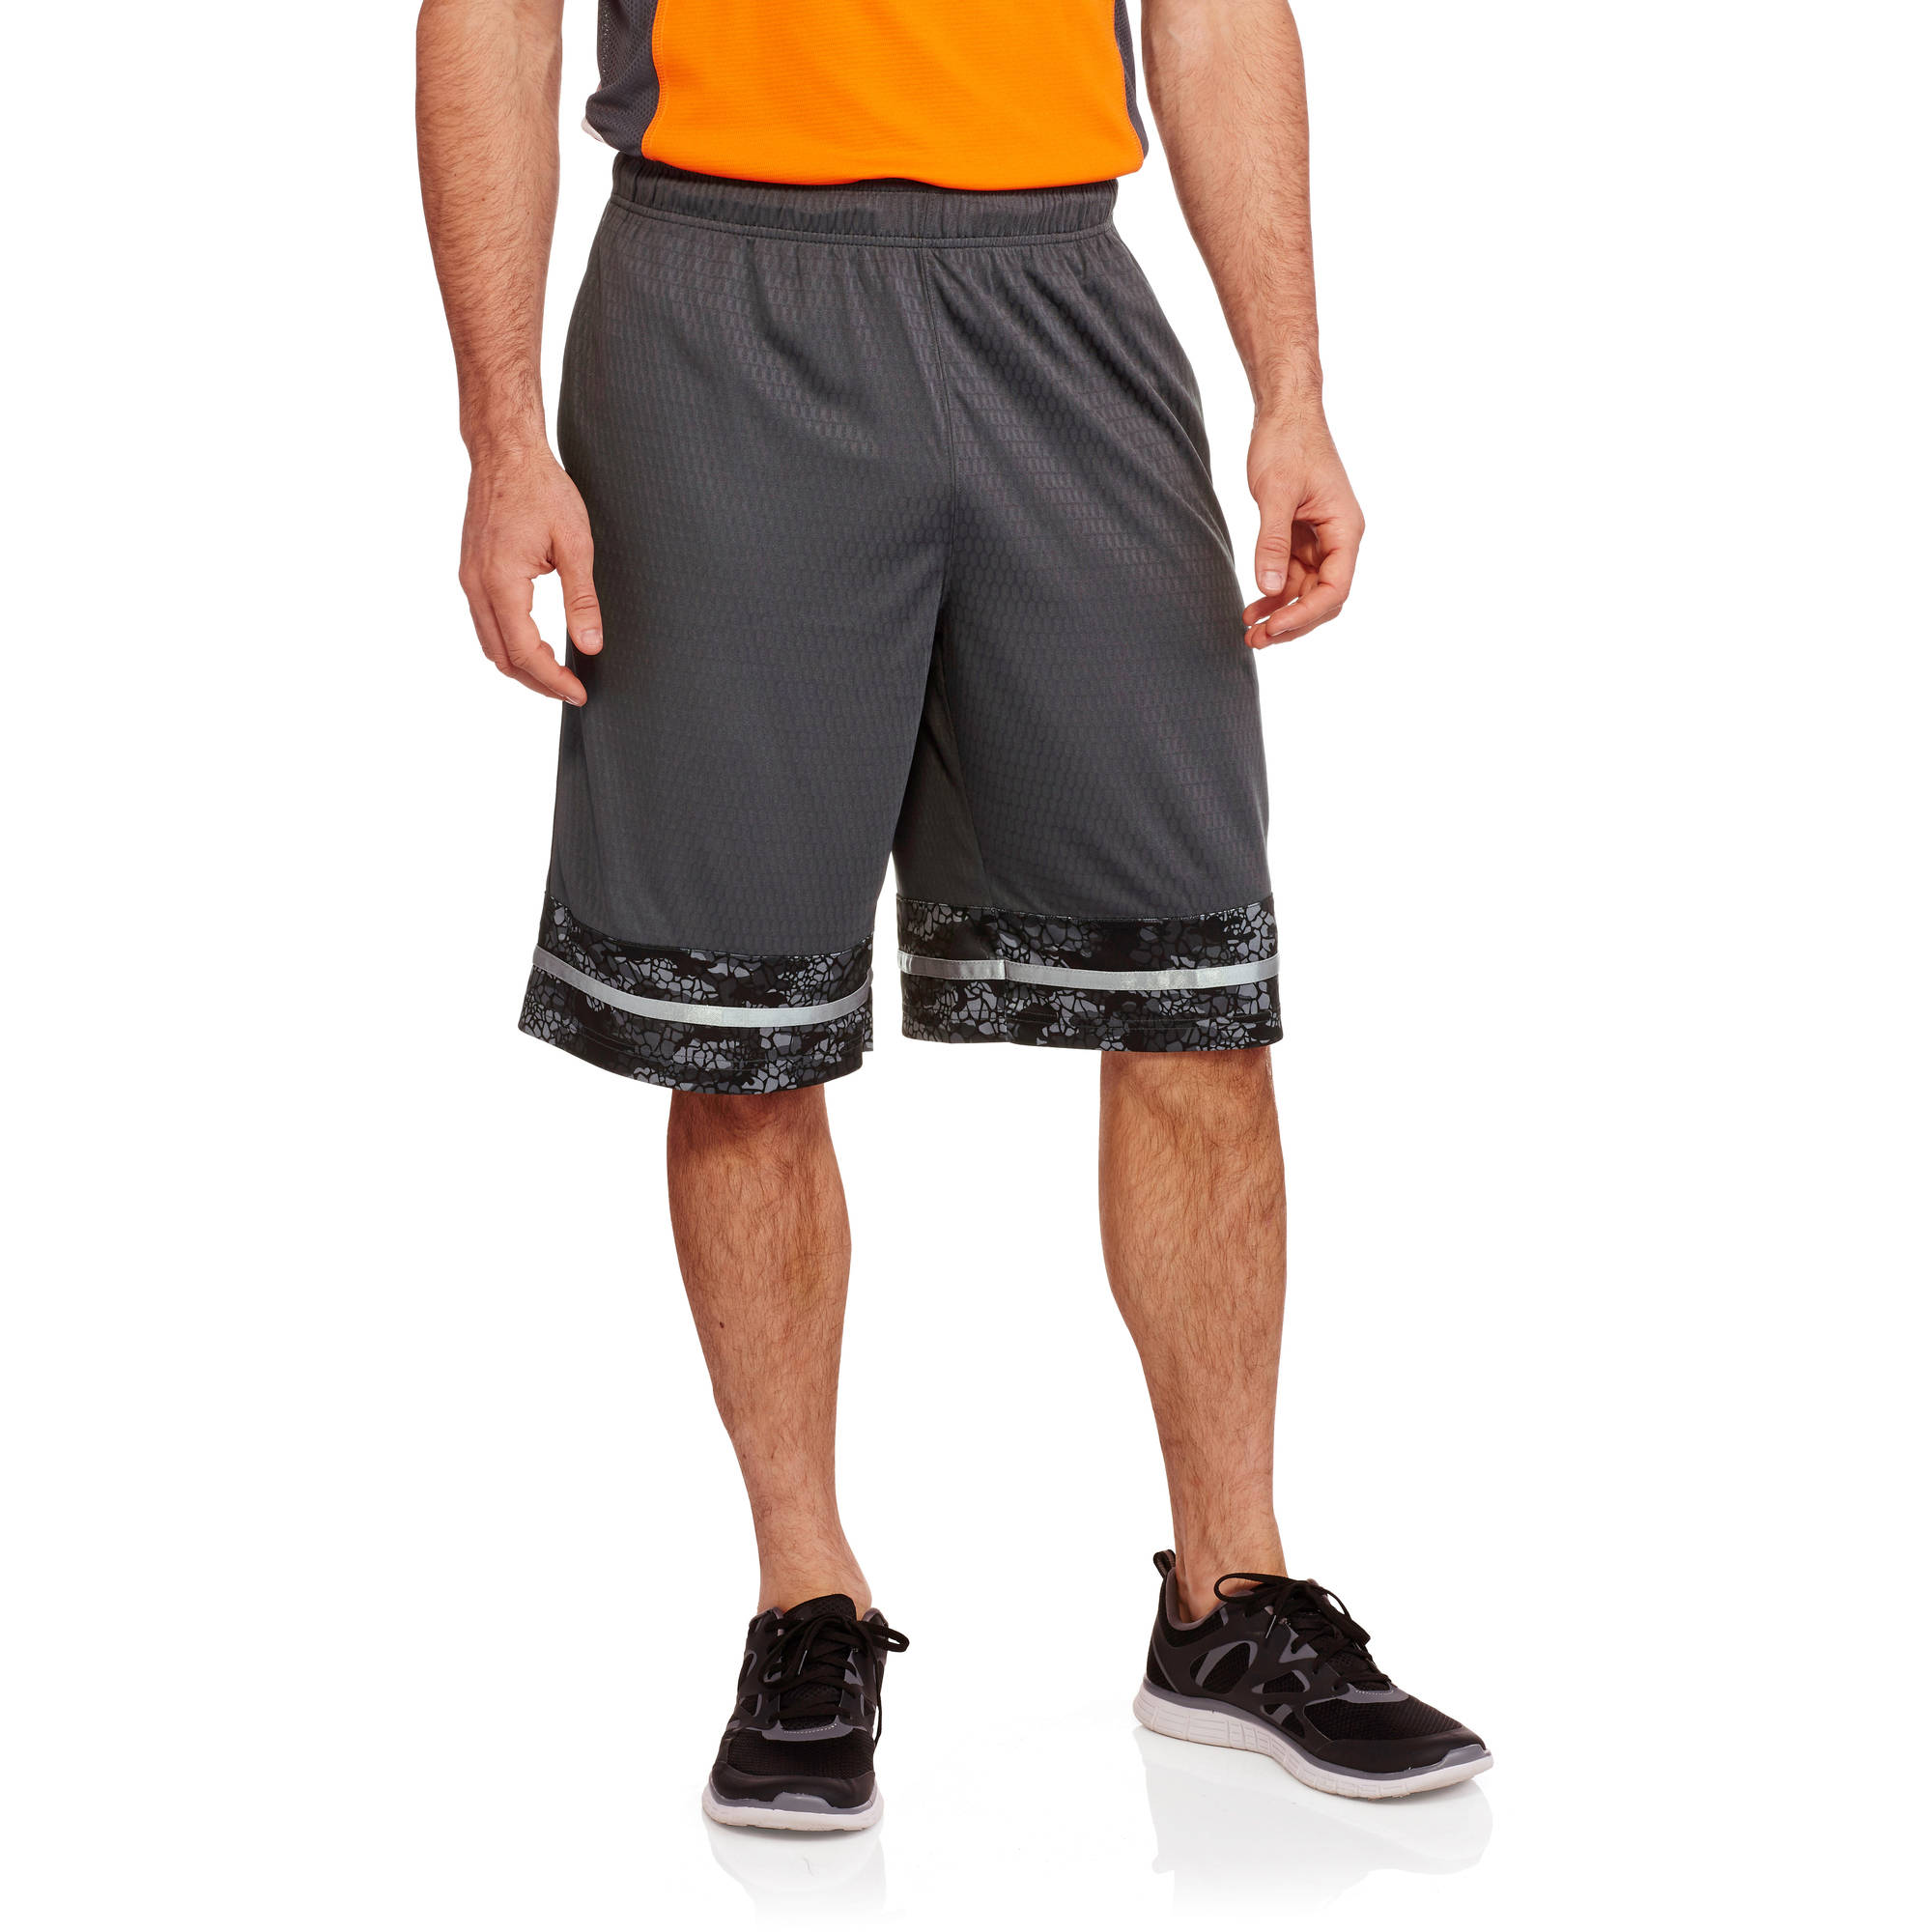 AND1 Men's Back to Basics Game Shorts